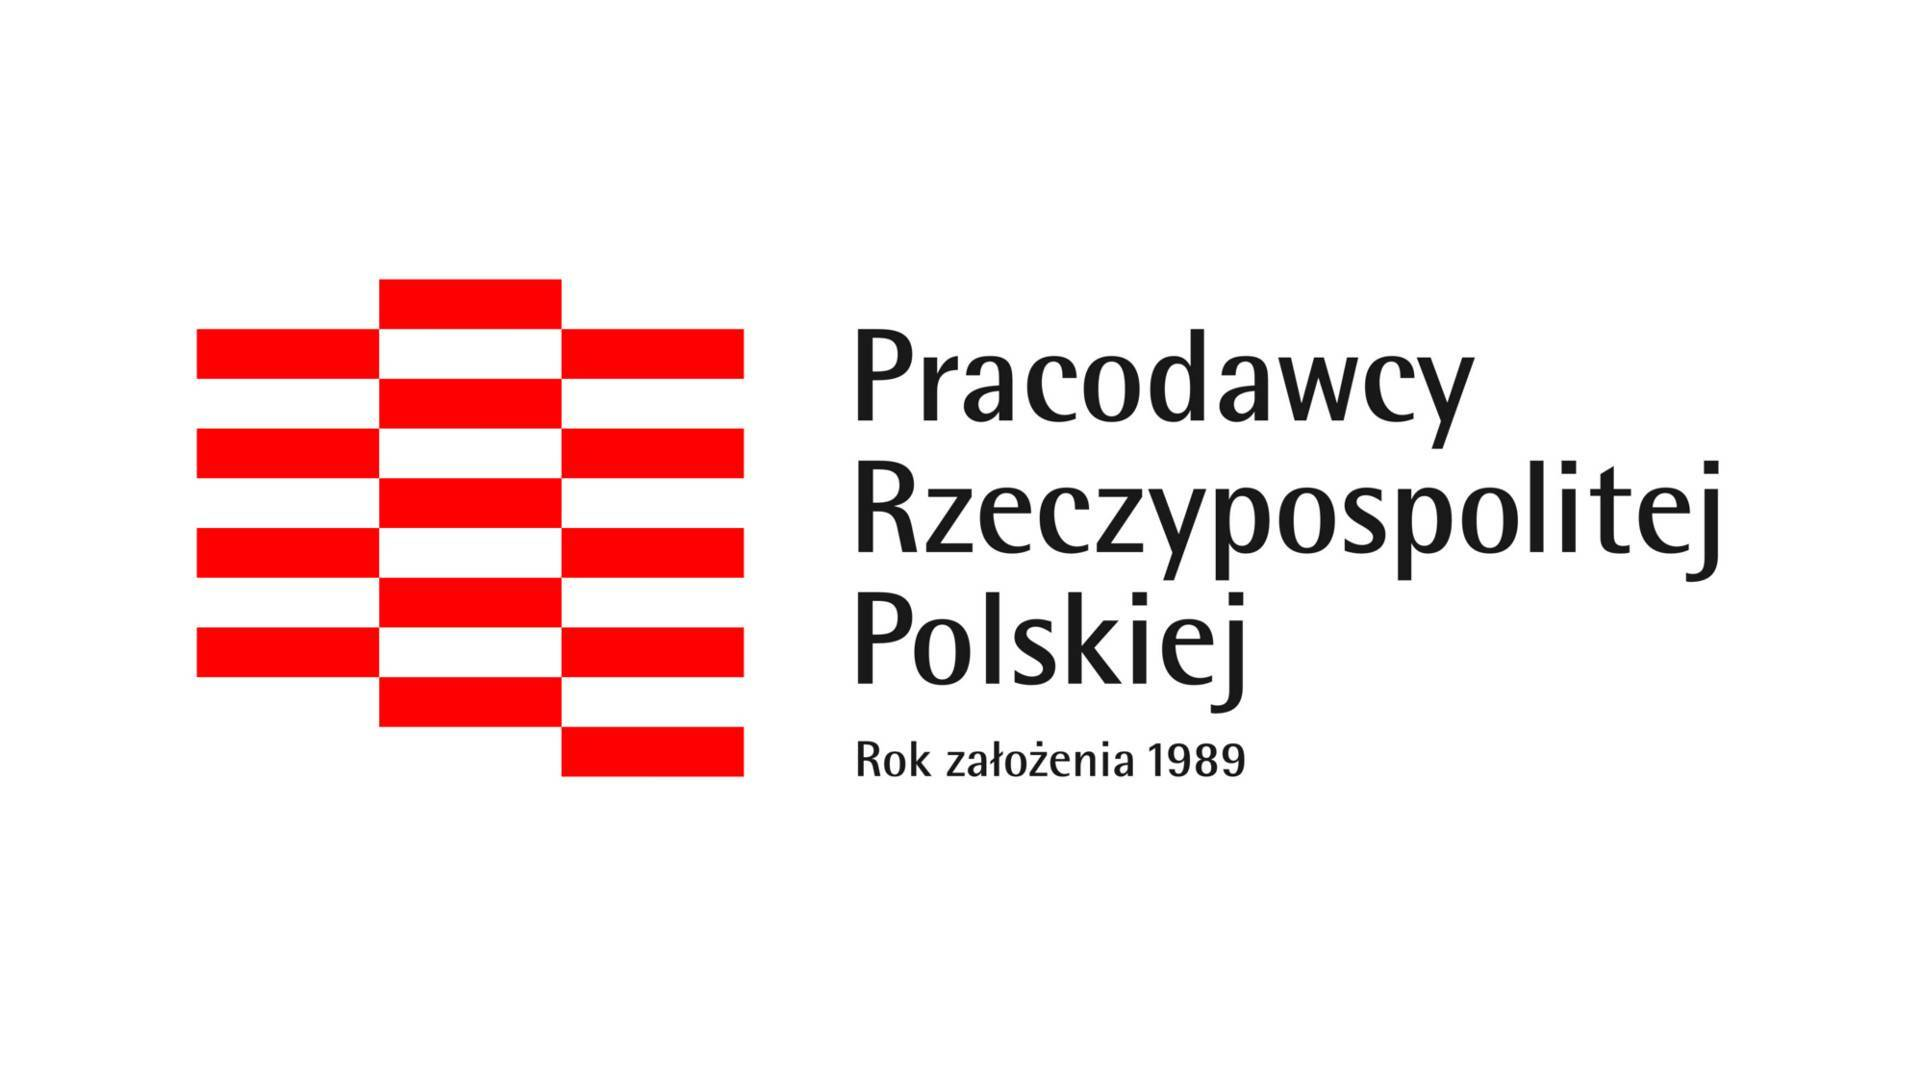 Employers of Poland